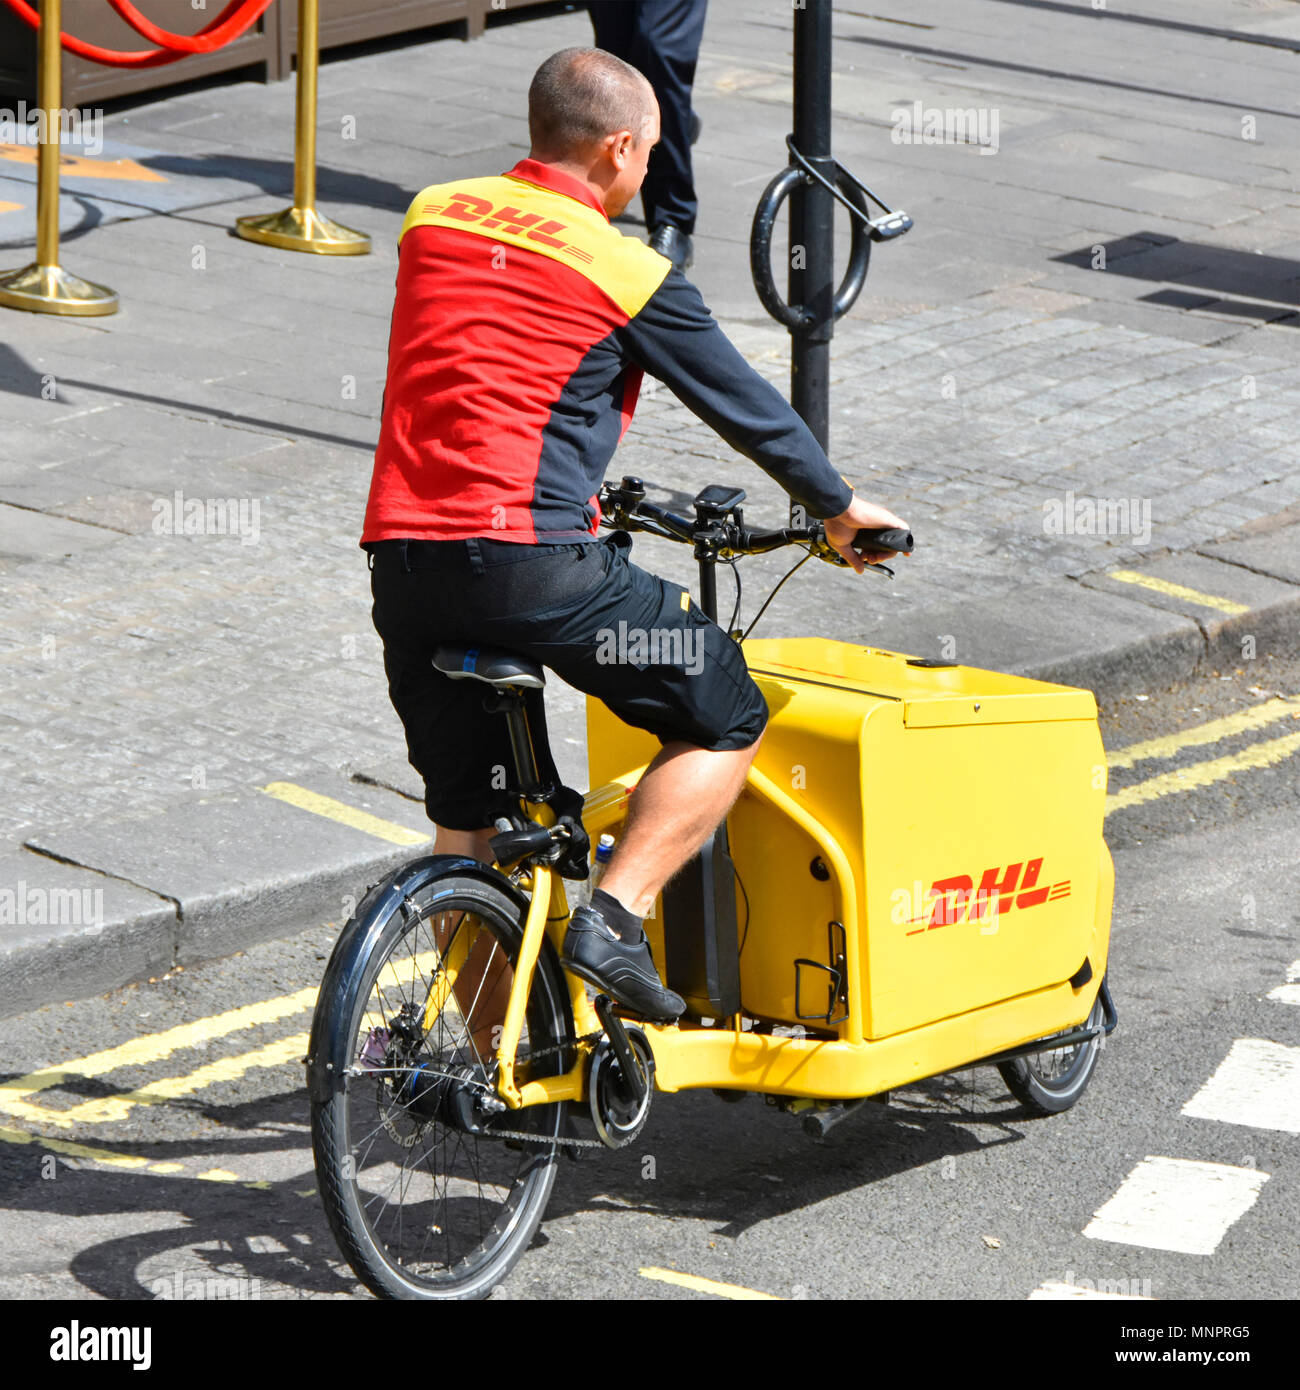 Unusual employment job DHL parcel delivery man in uniform working at